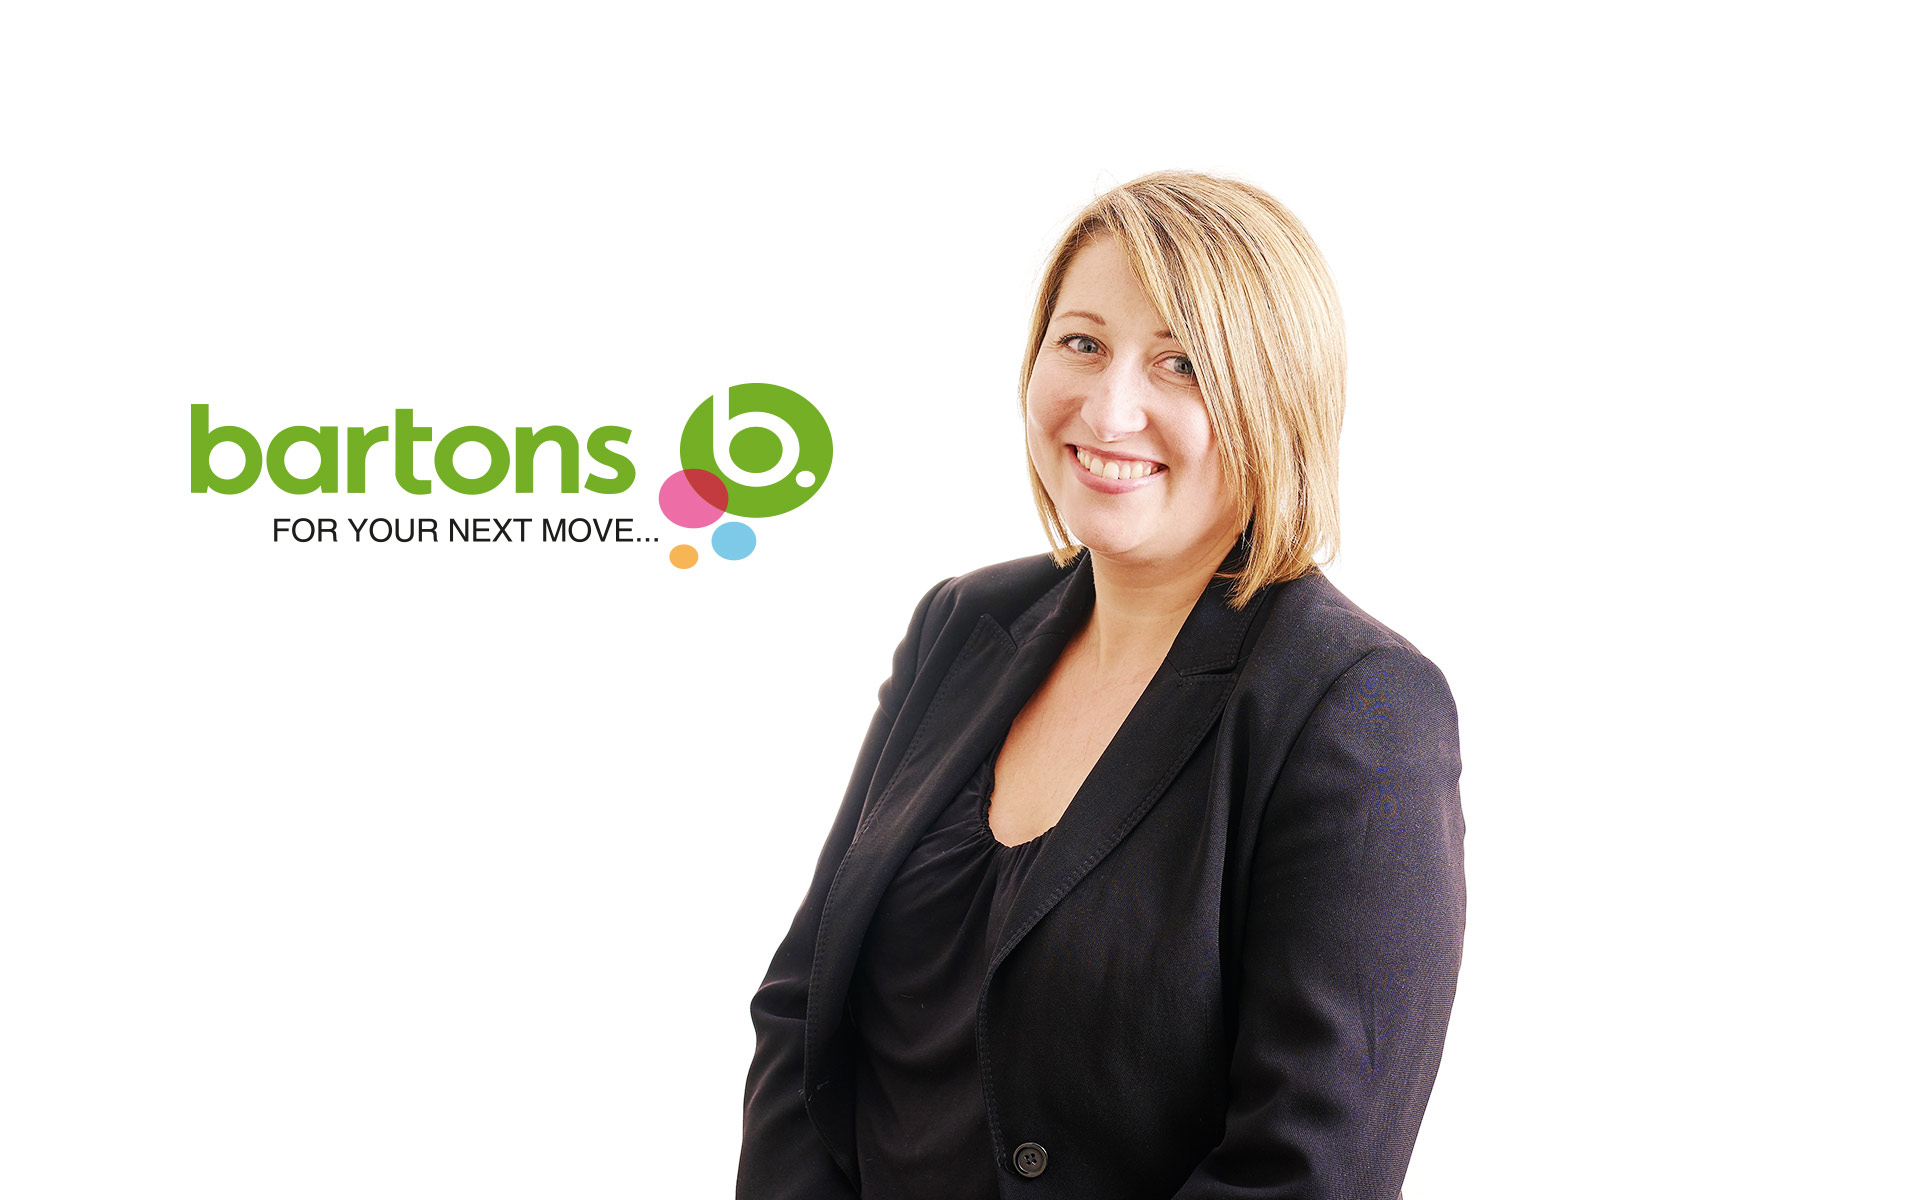 Bartons-IDEA-Rotherham-Photographer-Emma